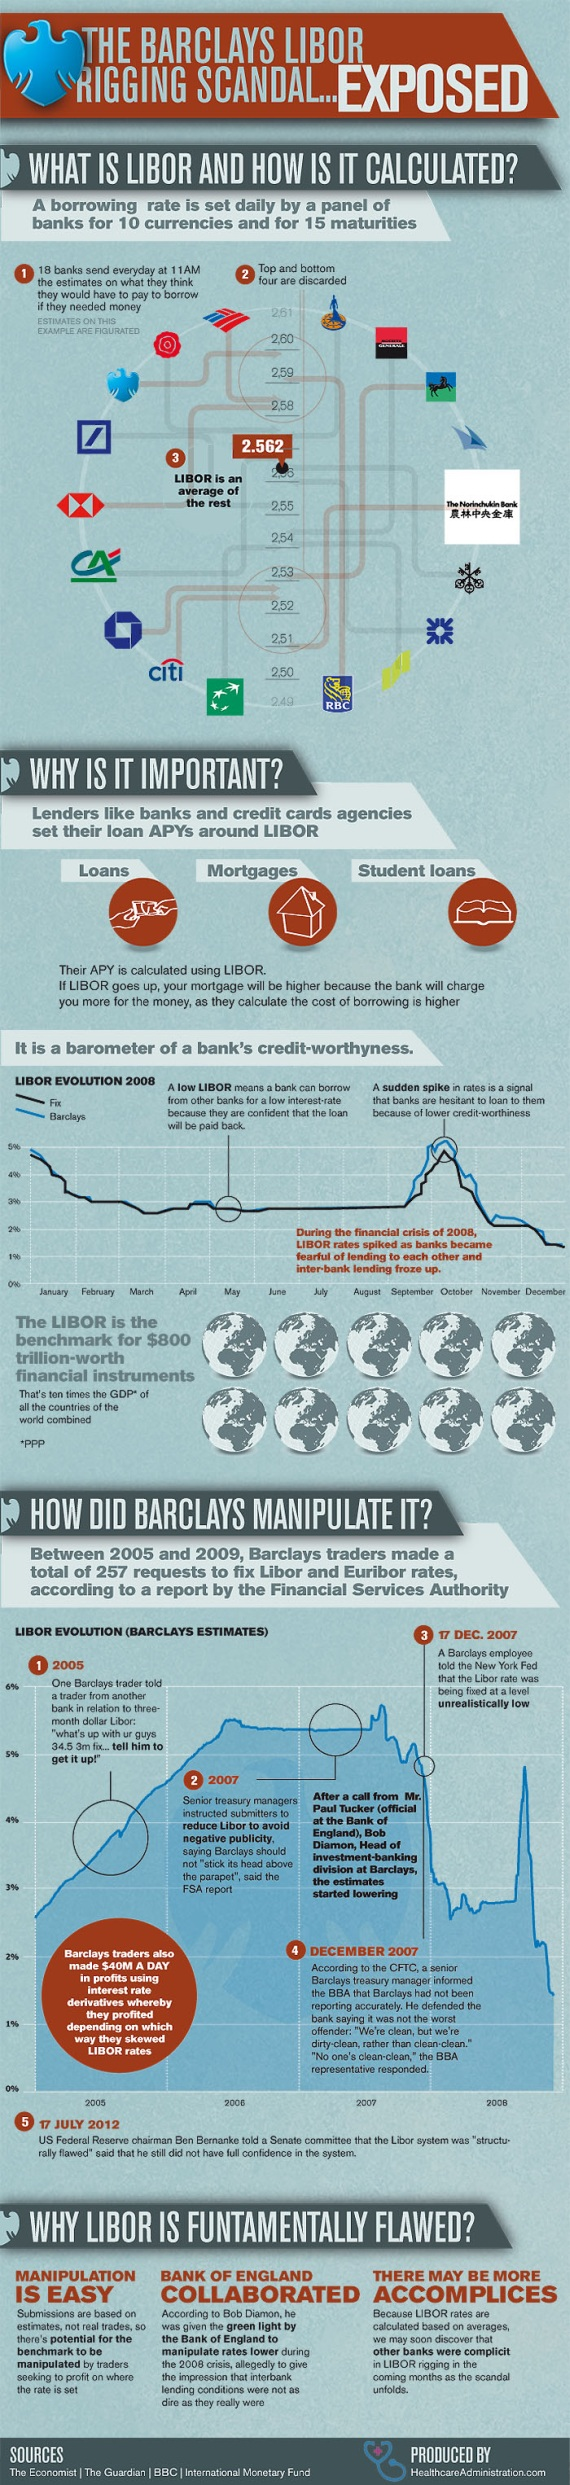 Exposing Barclays LIBOR Rigging Scandal